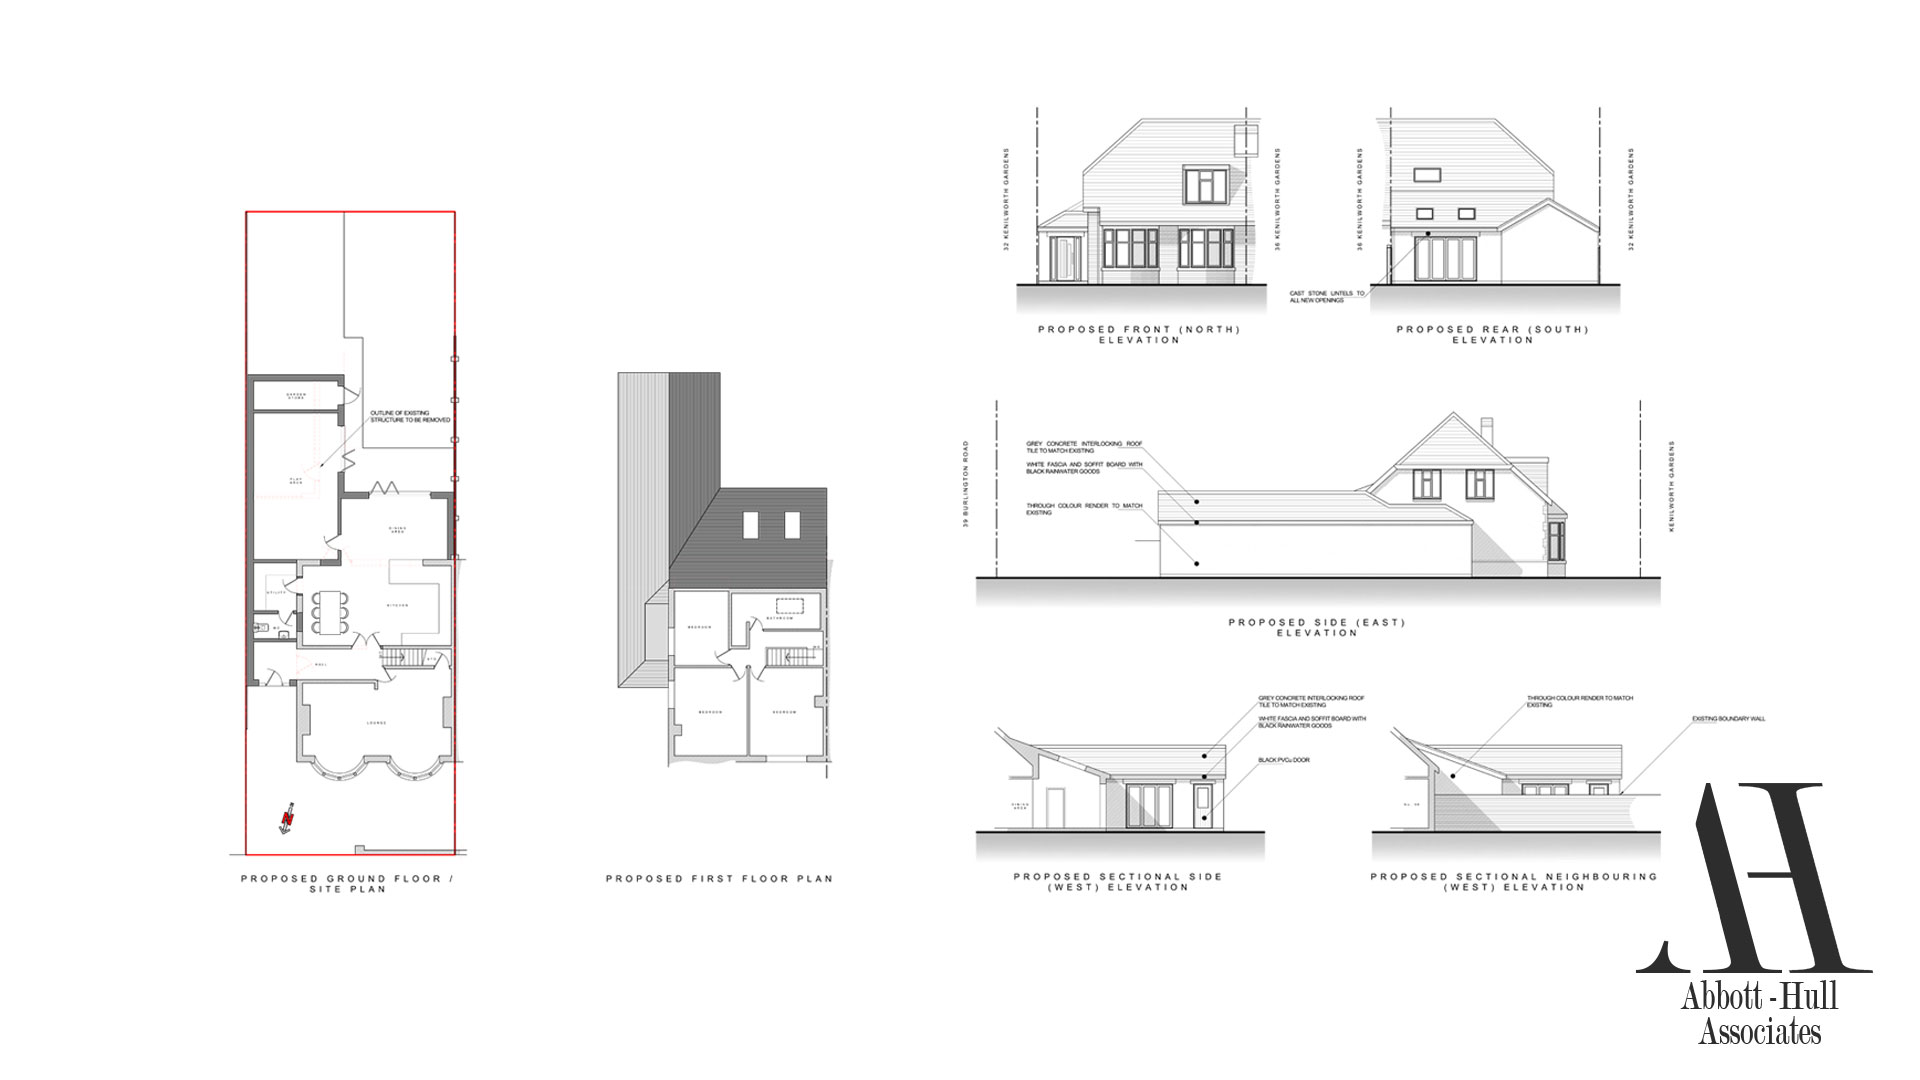 Open Floor Plan Remodel Planning Application Submitted Extension To Semi